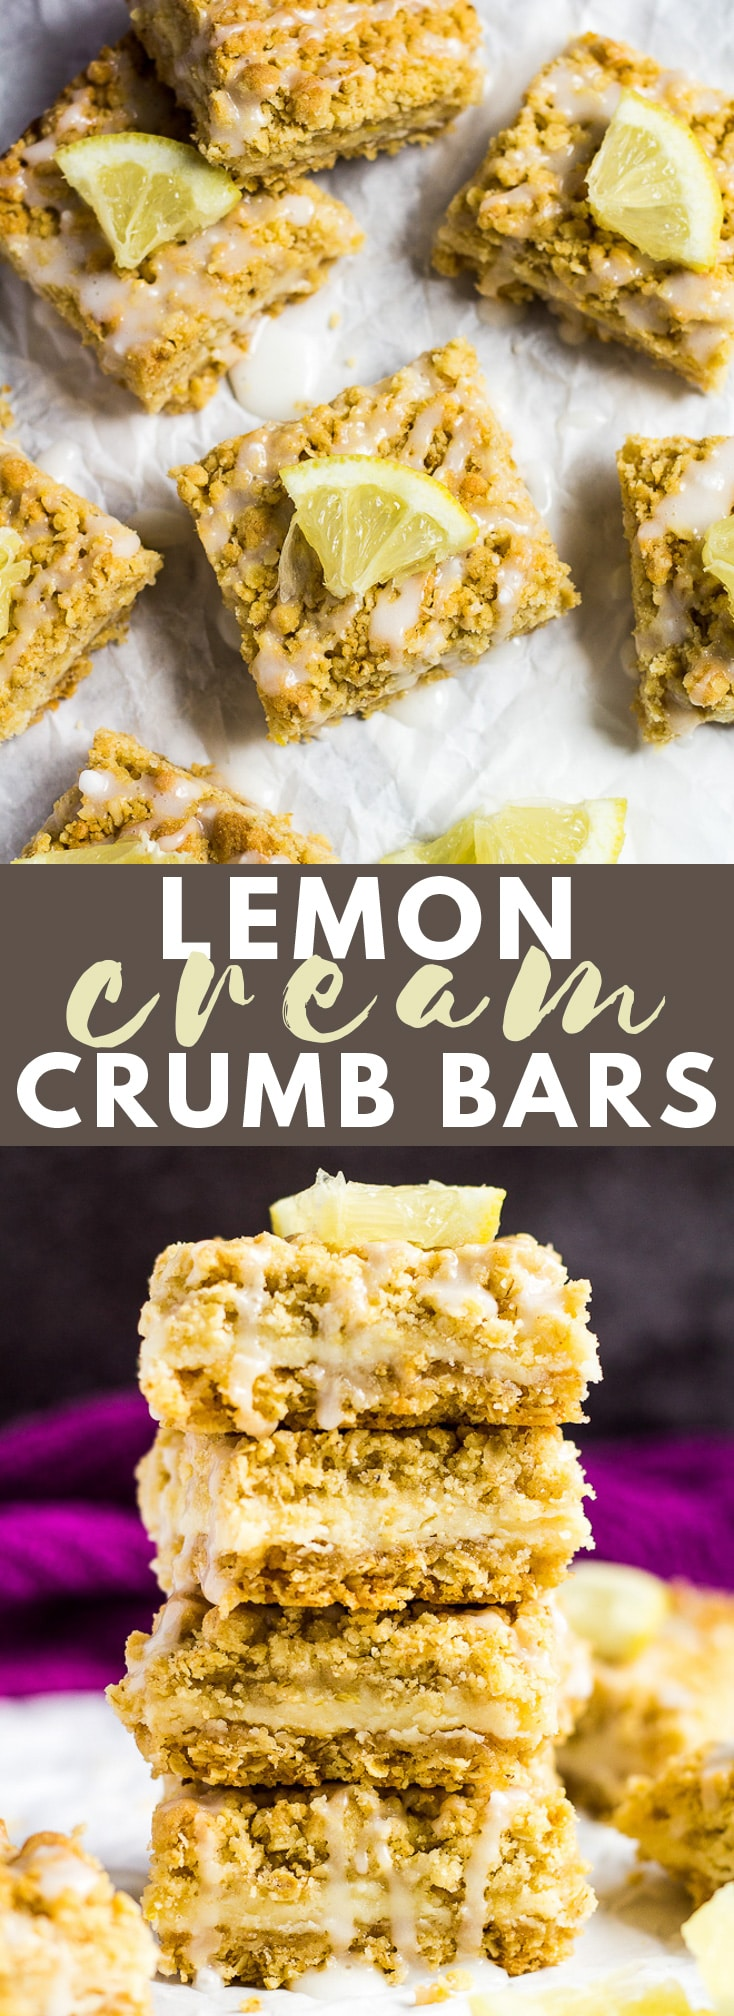 Lemon Cream Crumb Bars - Deliciously buttery crumb bars stuffed with a zesty lemon cream filling, and drizzled with a sweet glaze! #lemon #crumbbars #recipe